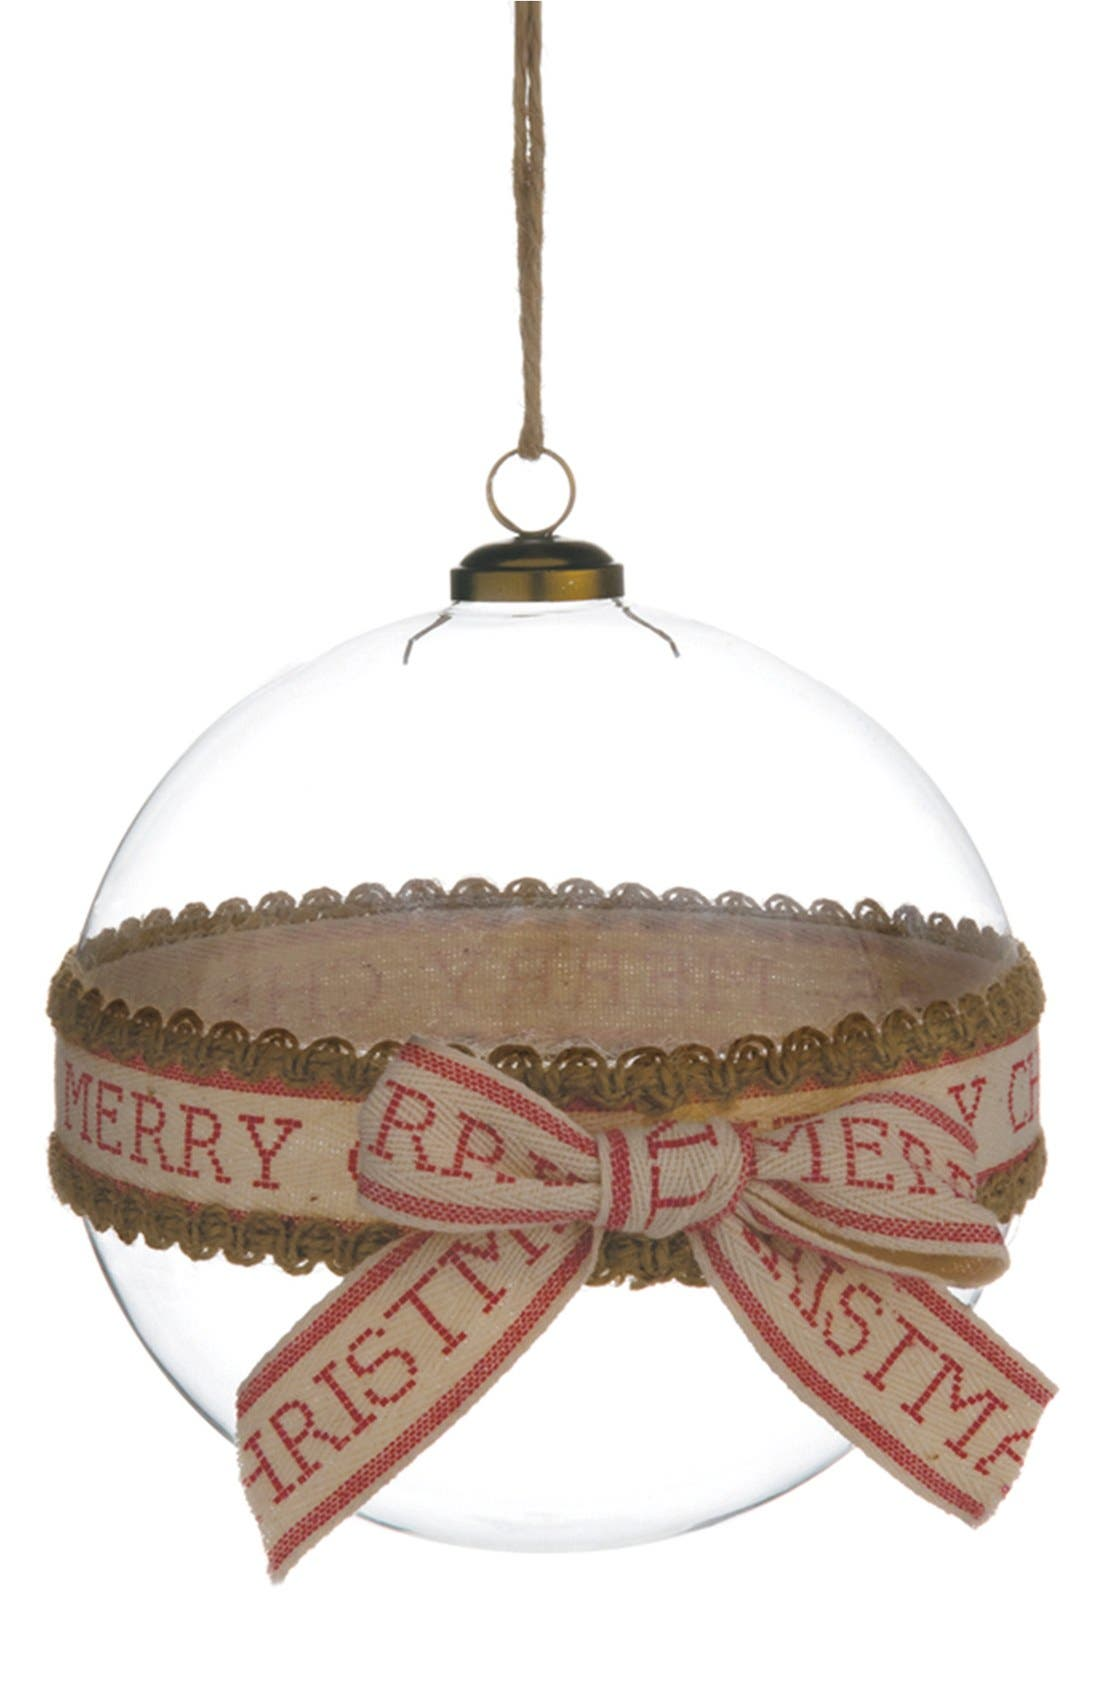 Alternate Image 1 Selected - ALLSTATE 'Merry Christmas' Glass Ball Ornament